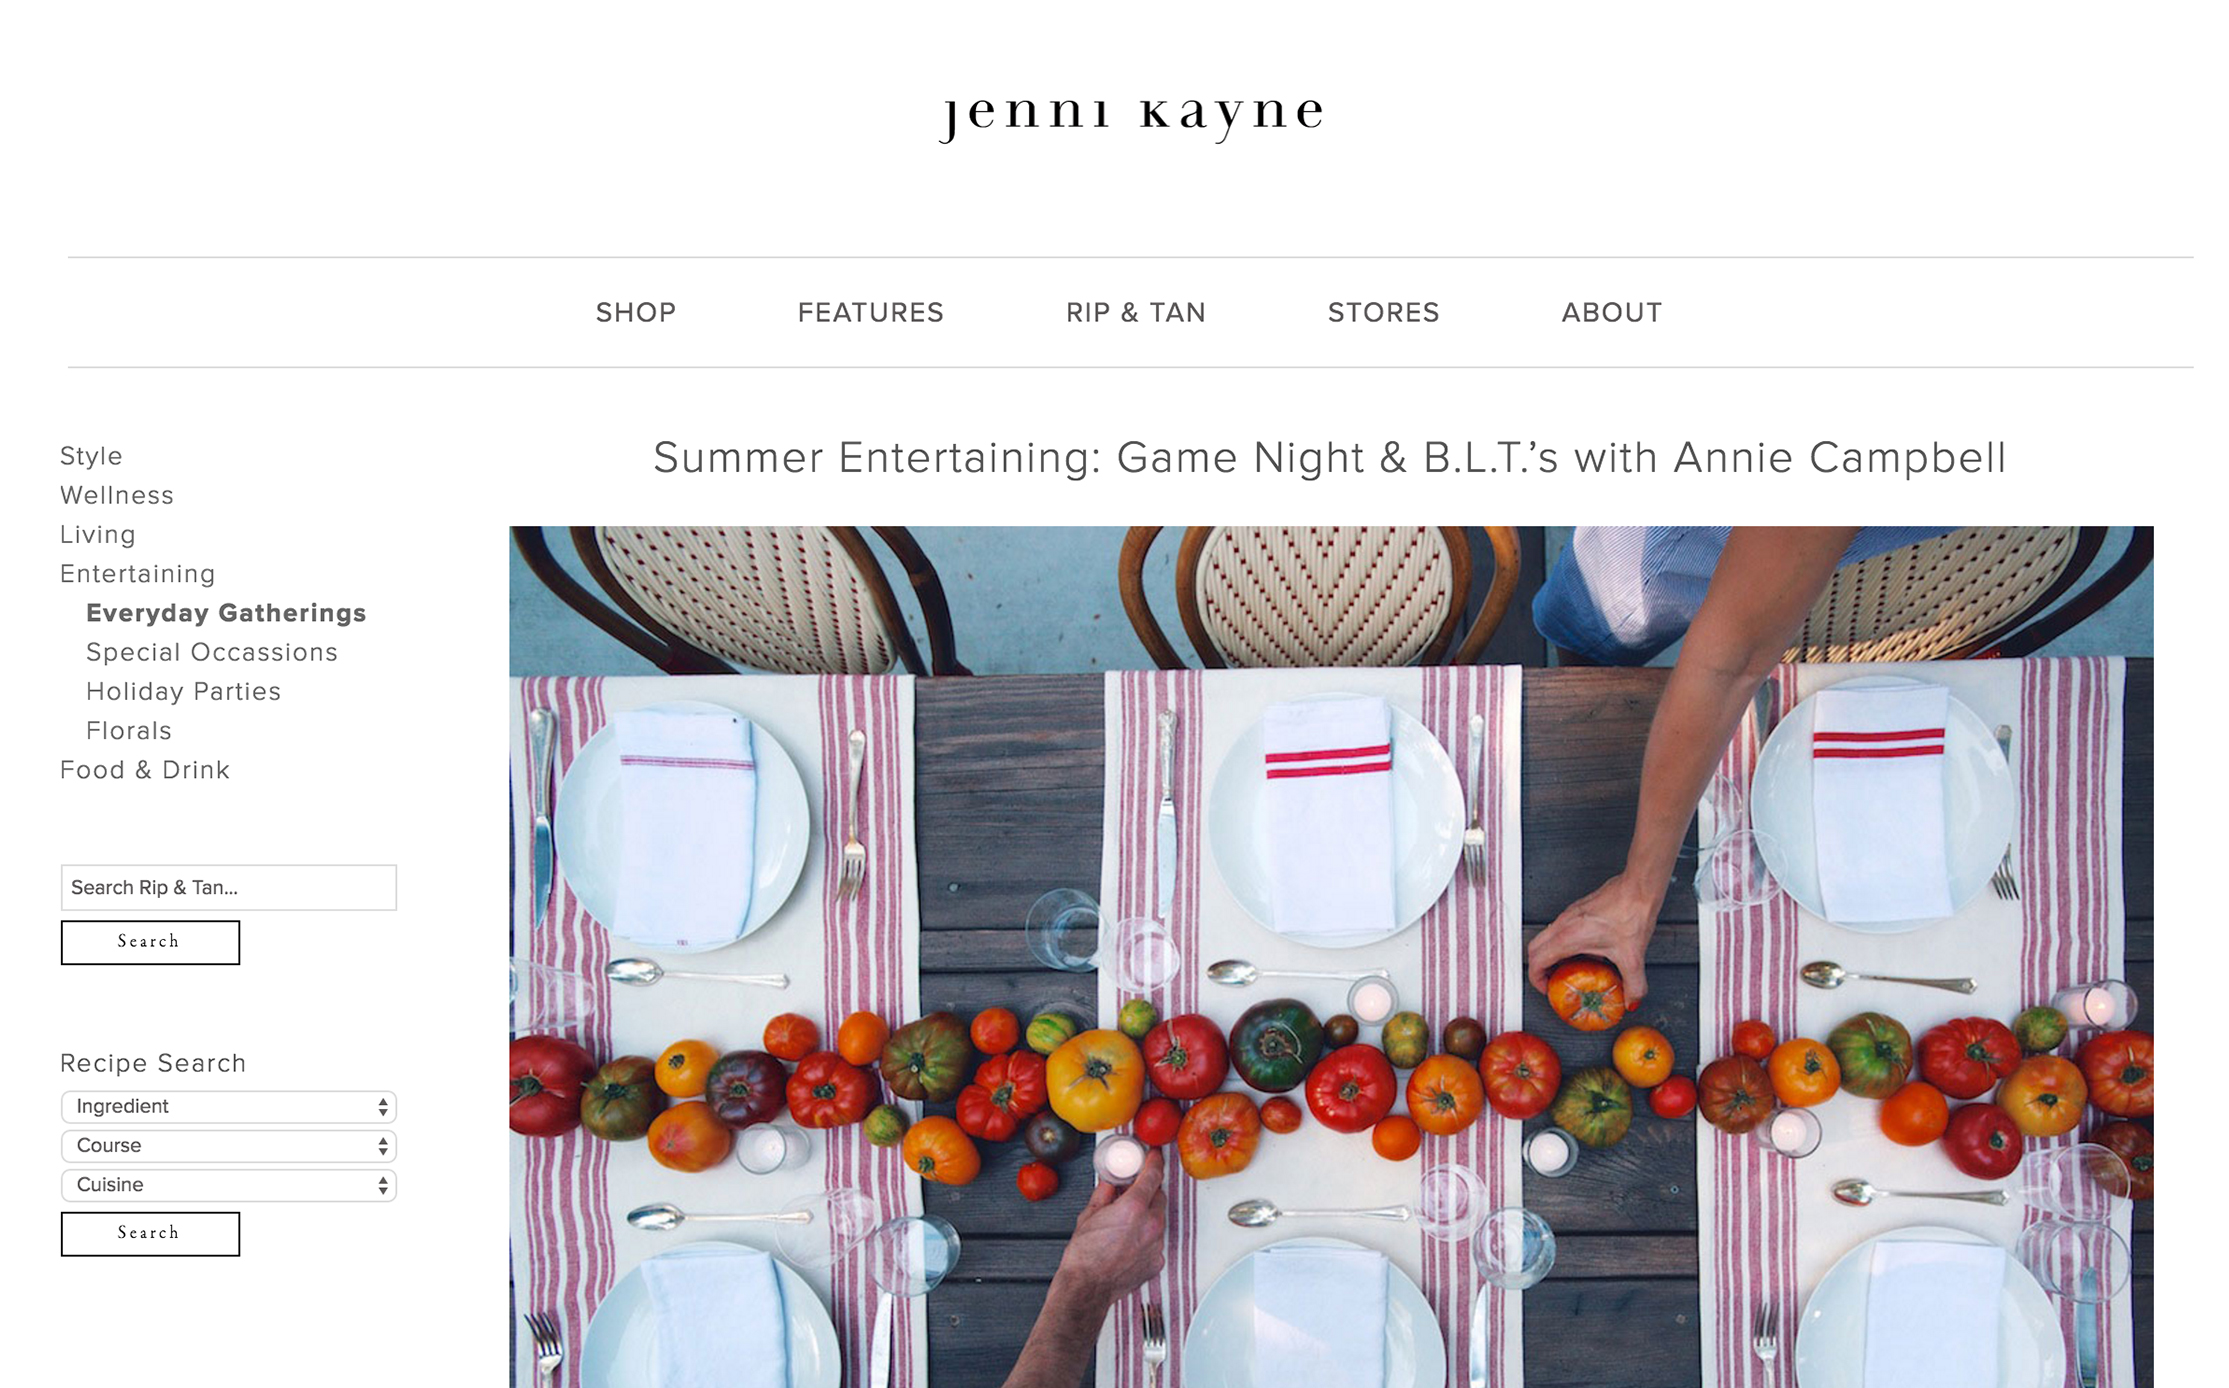 RIP AND TAN //  Summer Game Night + B.L.T.s featuring annie campbell